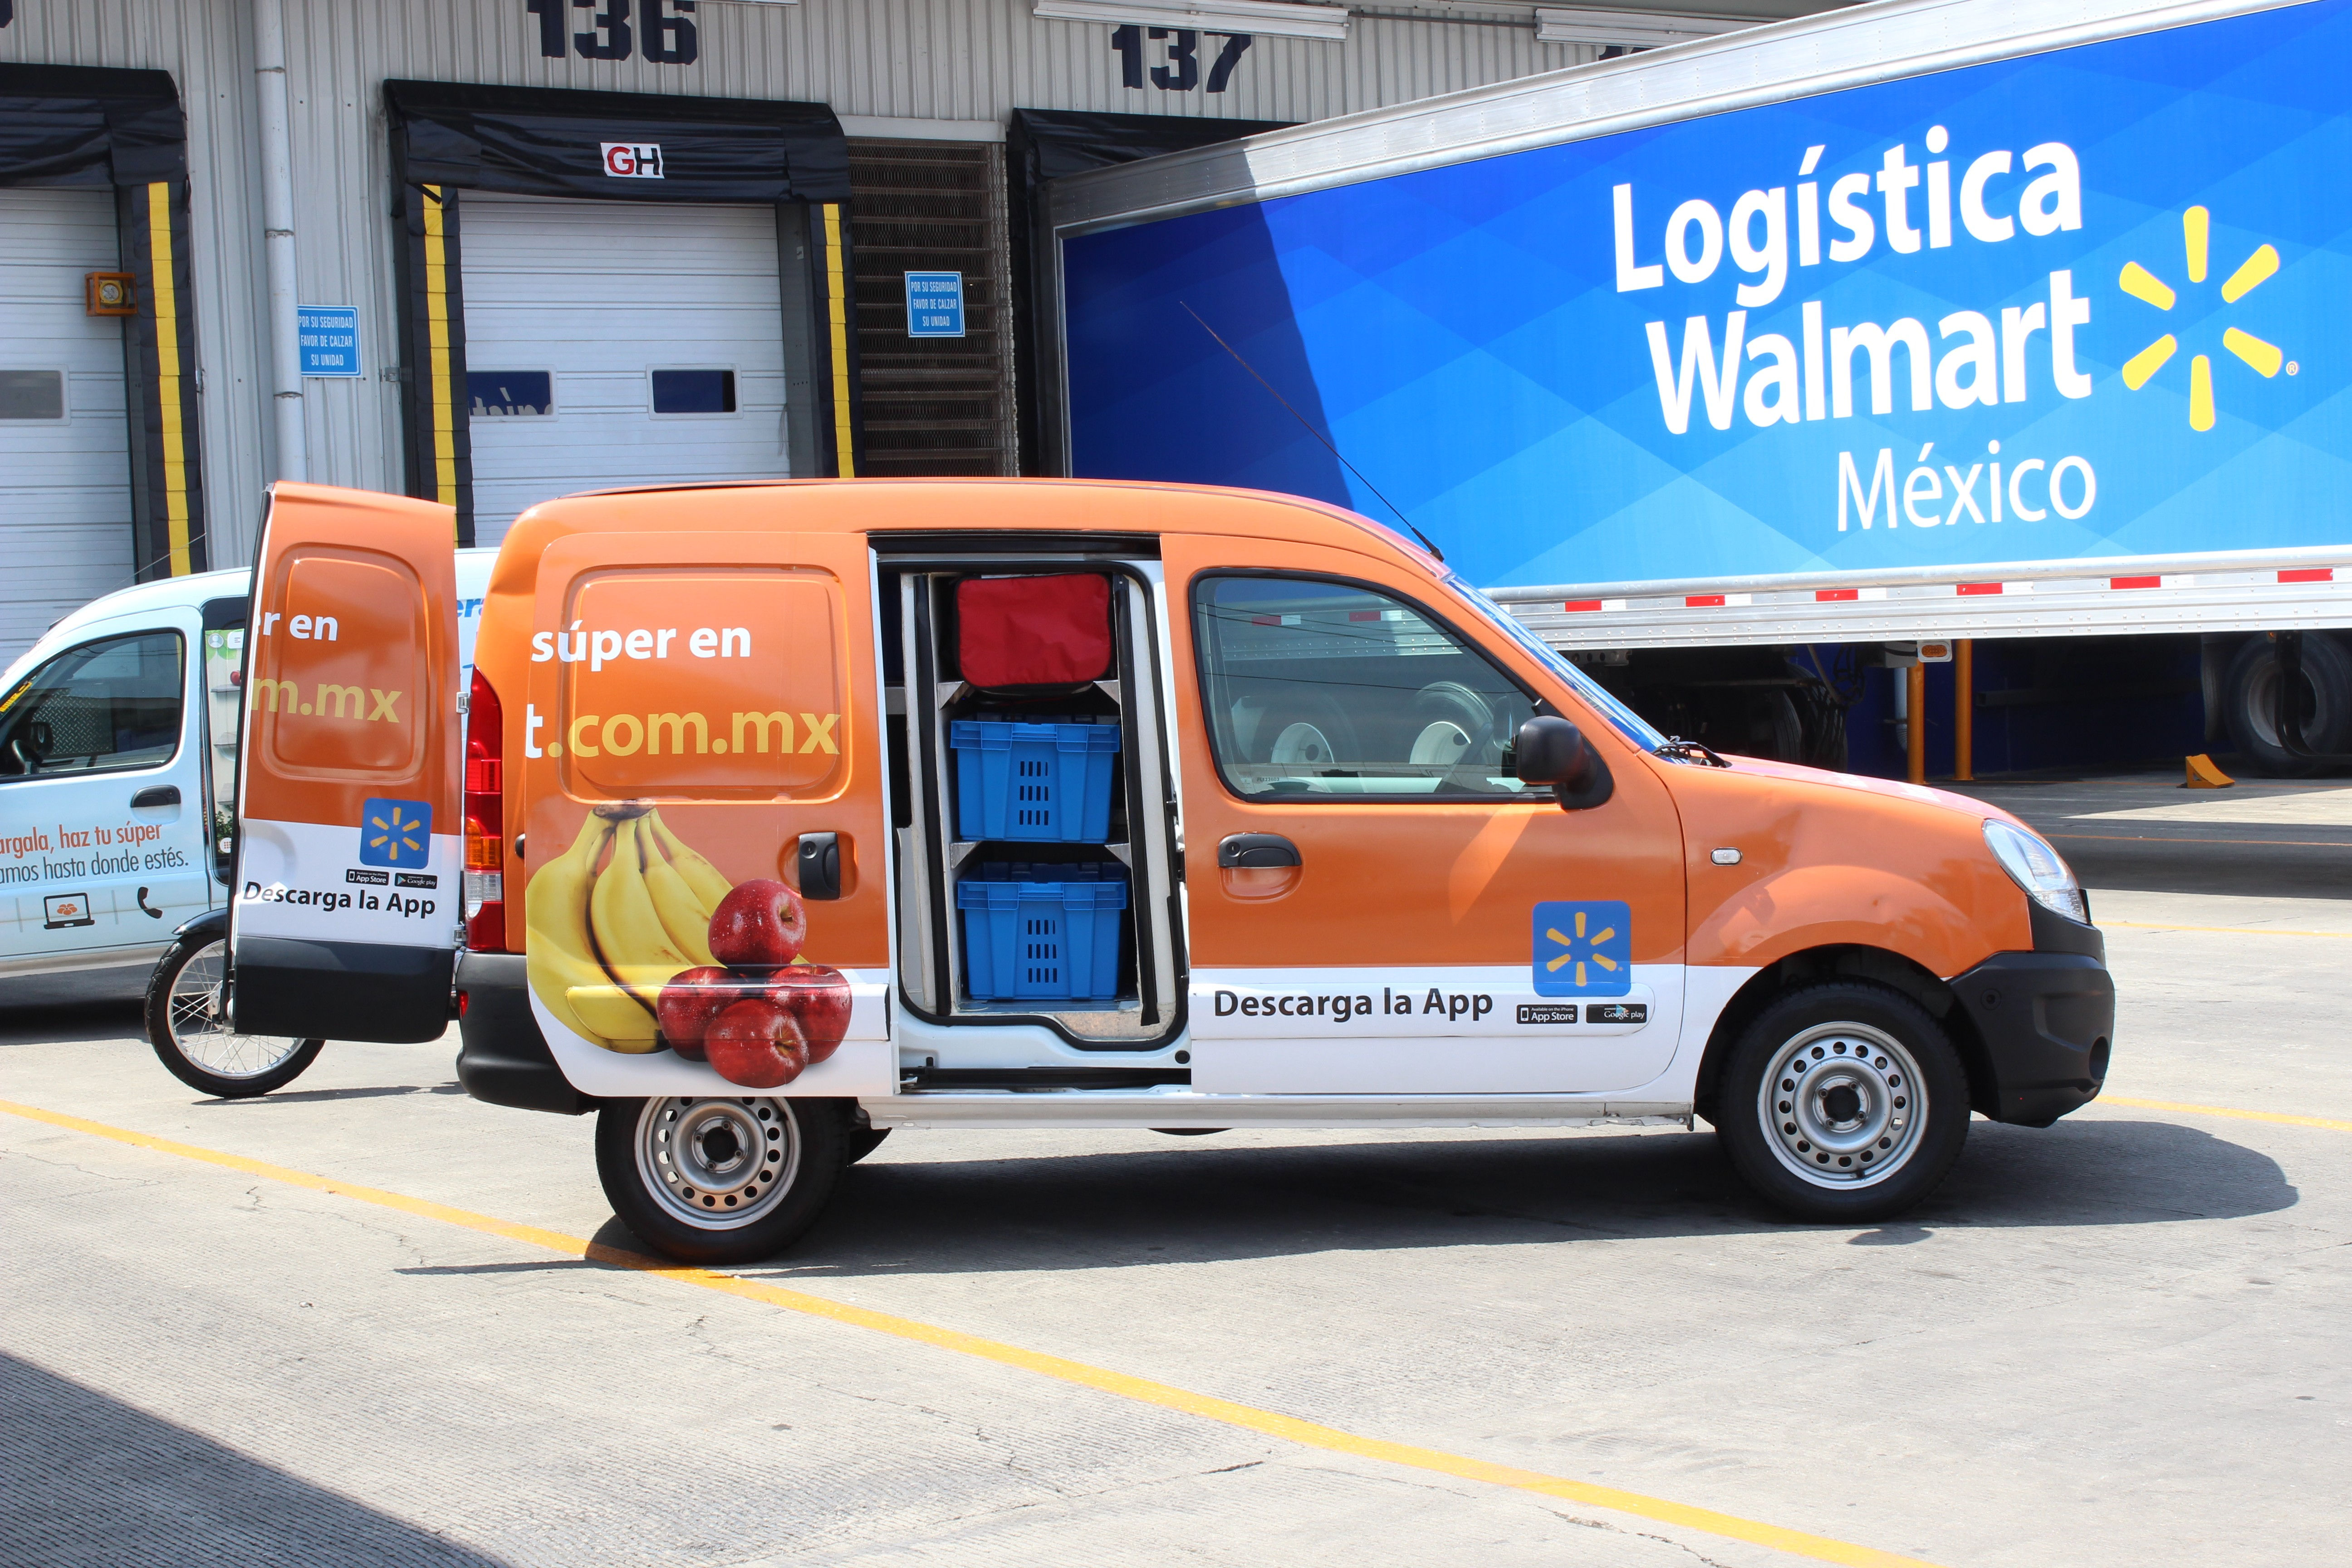 Grocery Delivery Van in Mexico